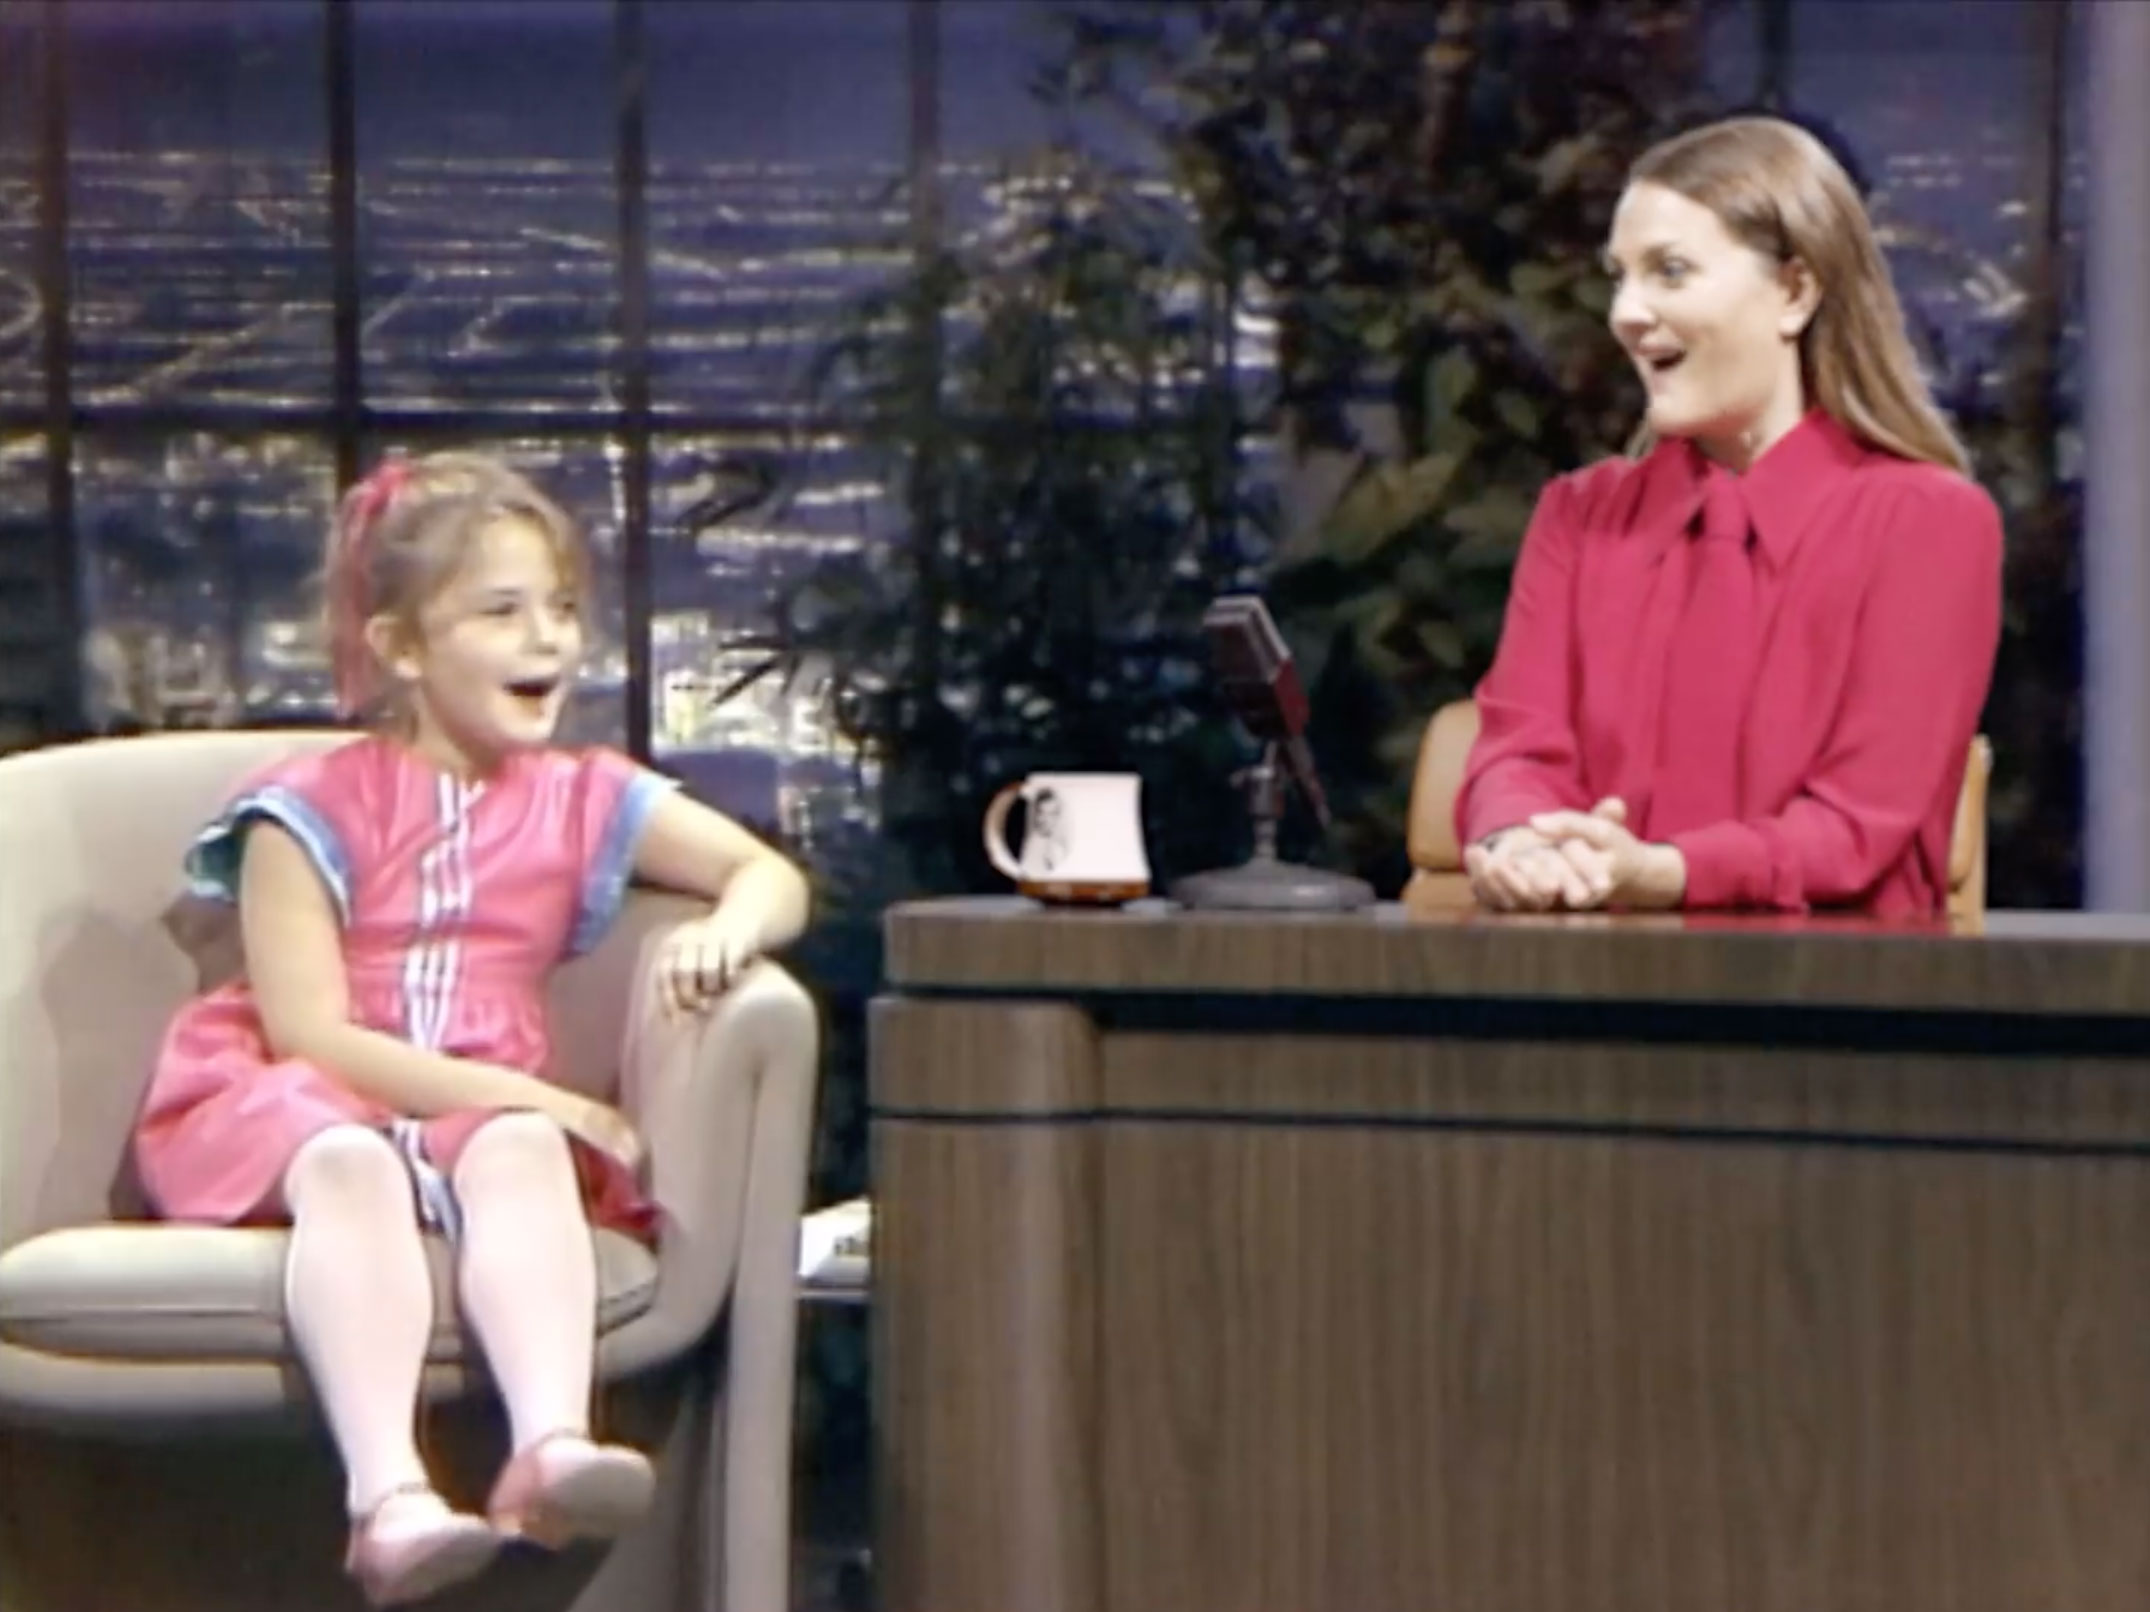 Drew Barrymore interviews her 7-year-old self in promo for her new talk show